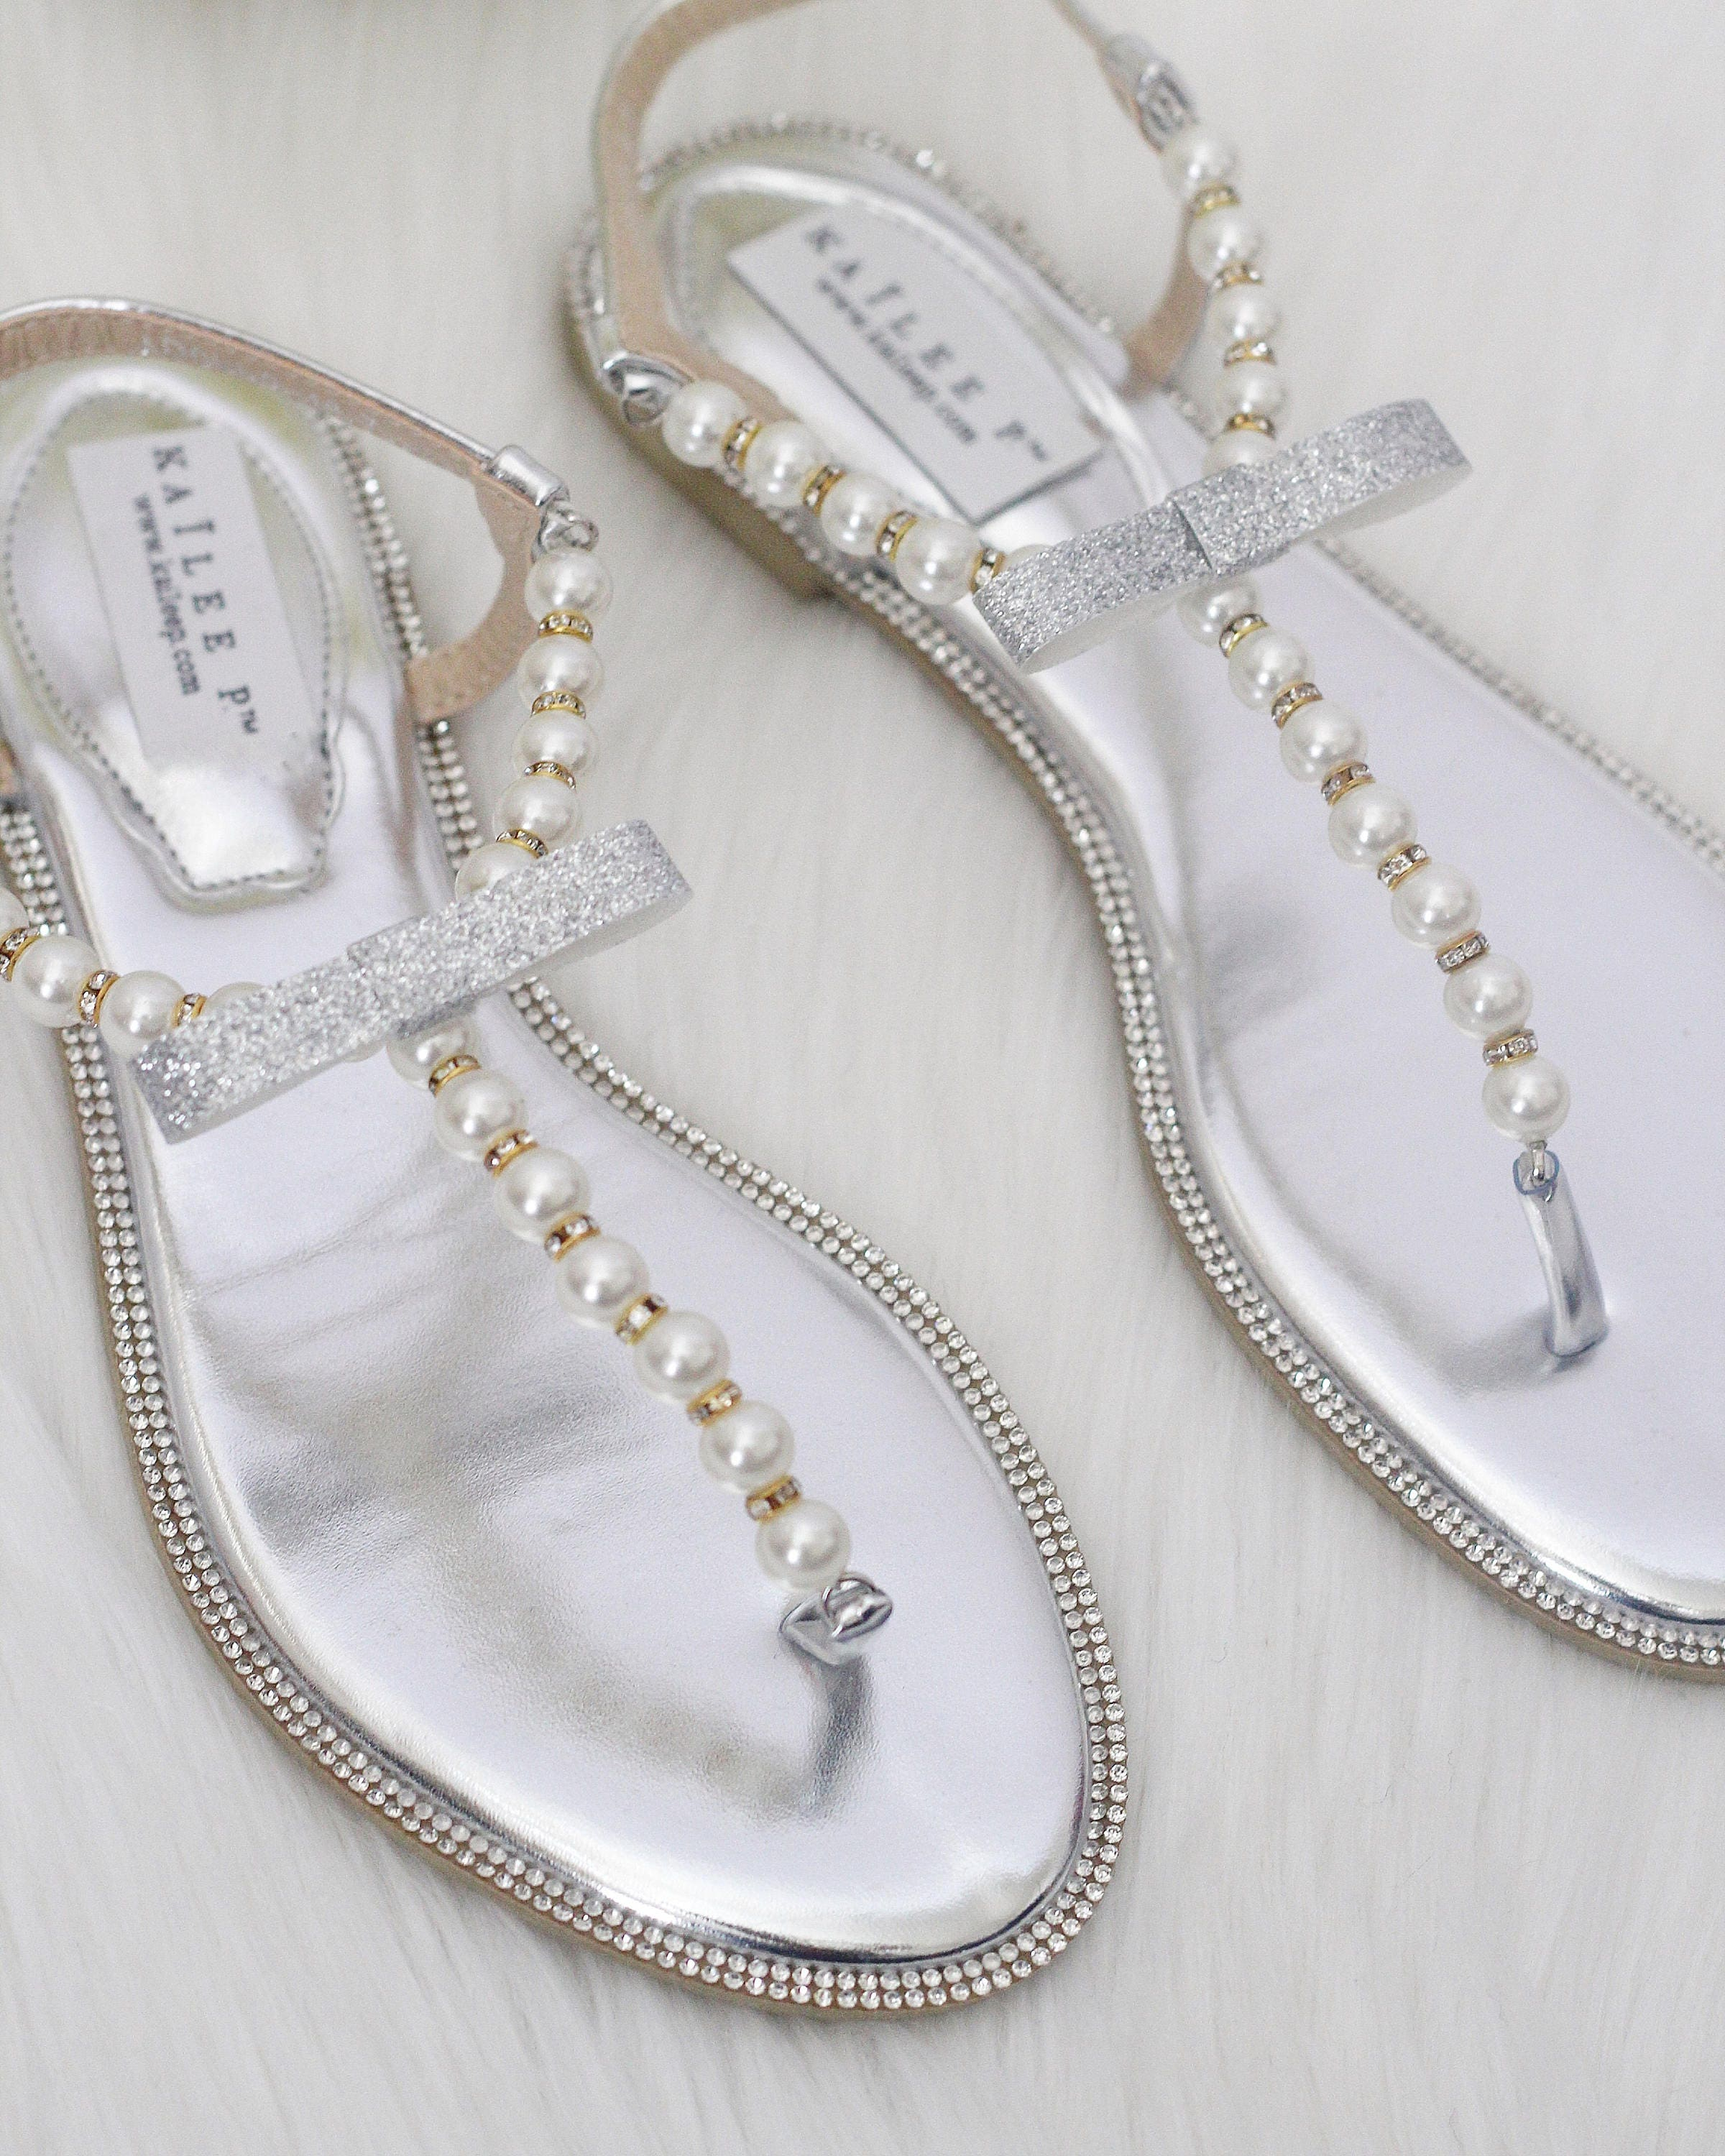 53033f2b7d6 Women   Girls Wedding Pearl Sandals T-Strap SILVER Pearl